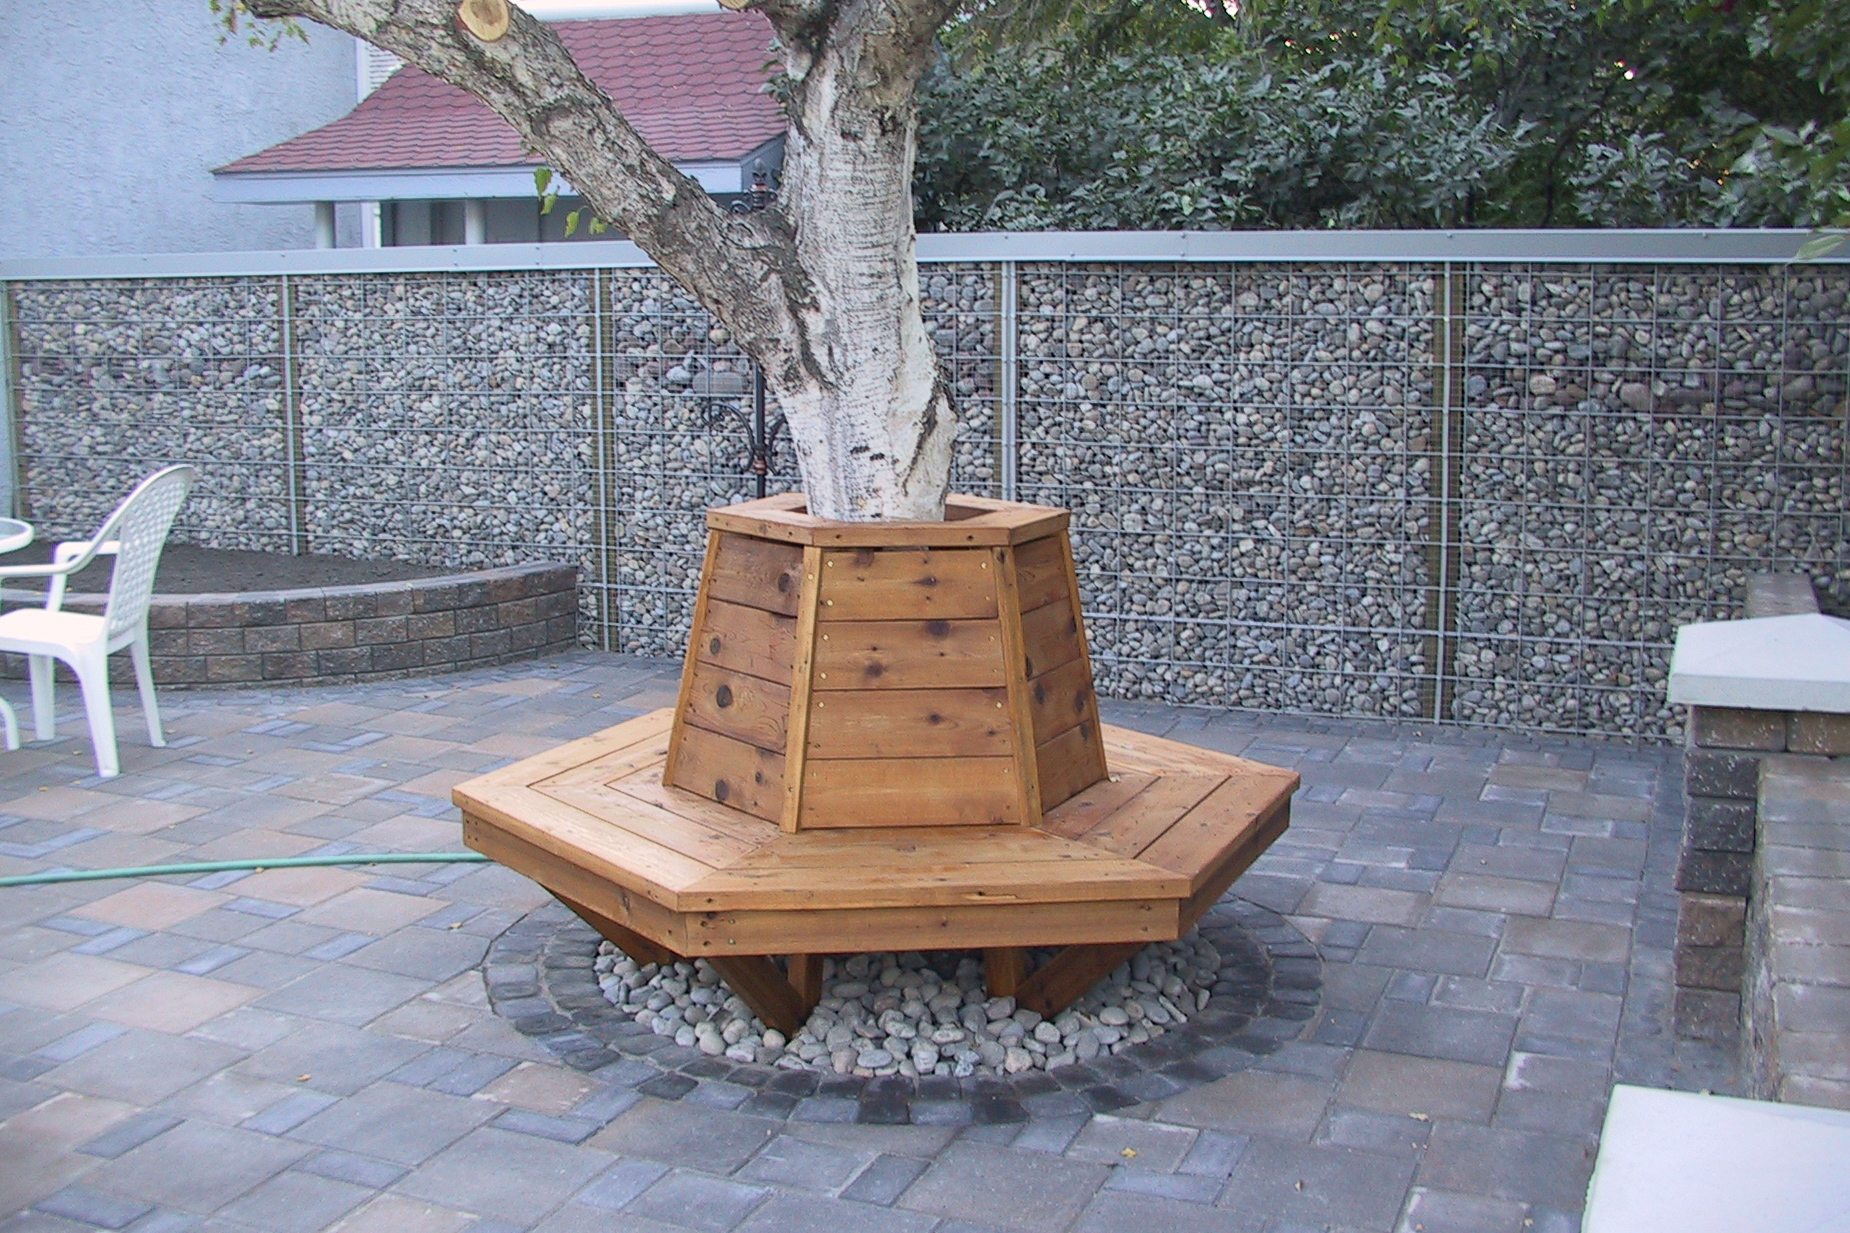 tree-bench-wood-landscape-features.jpg